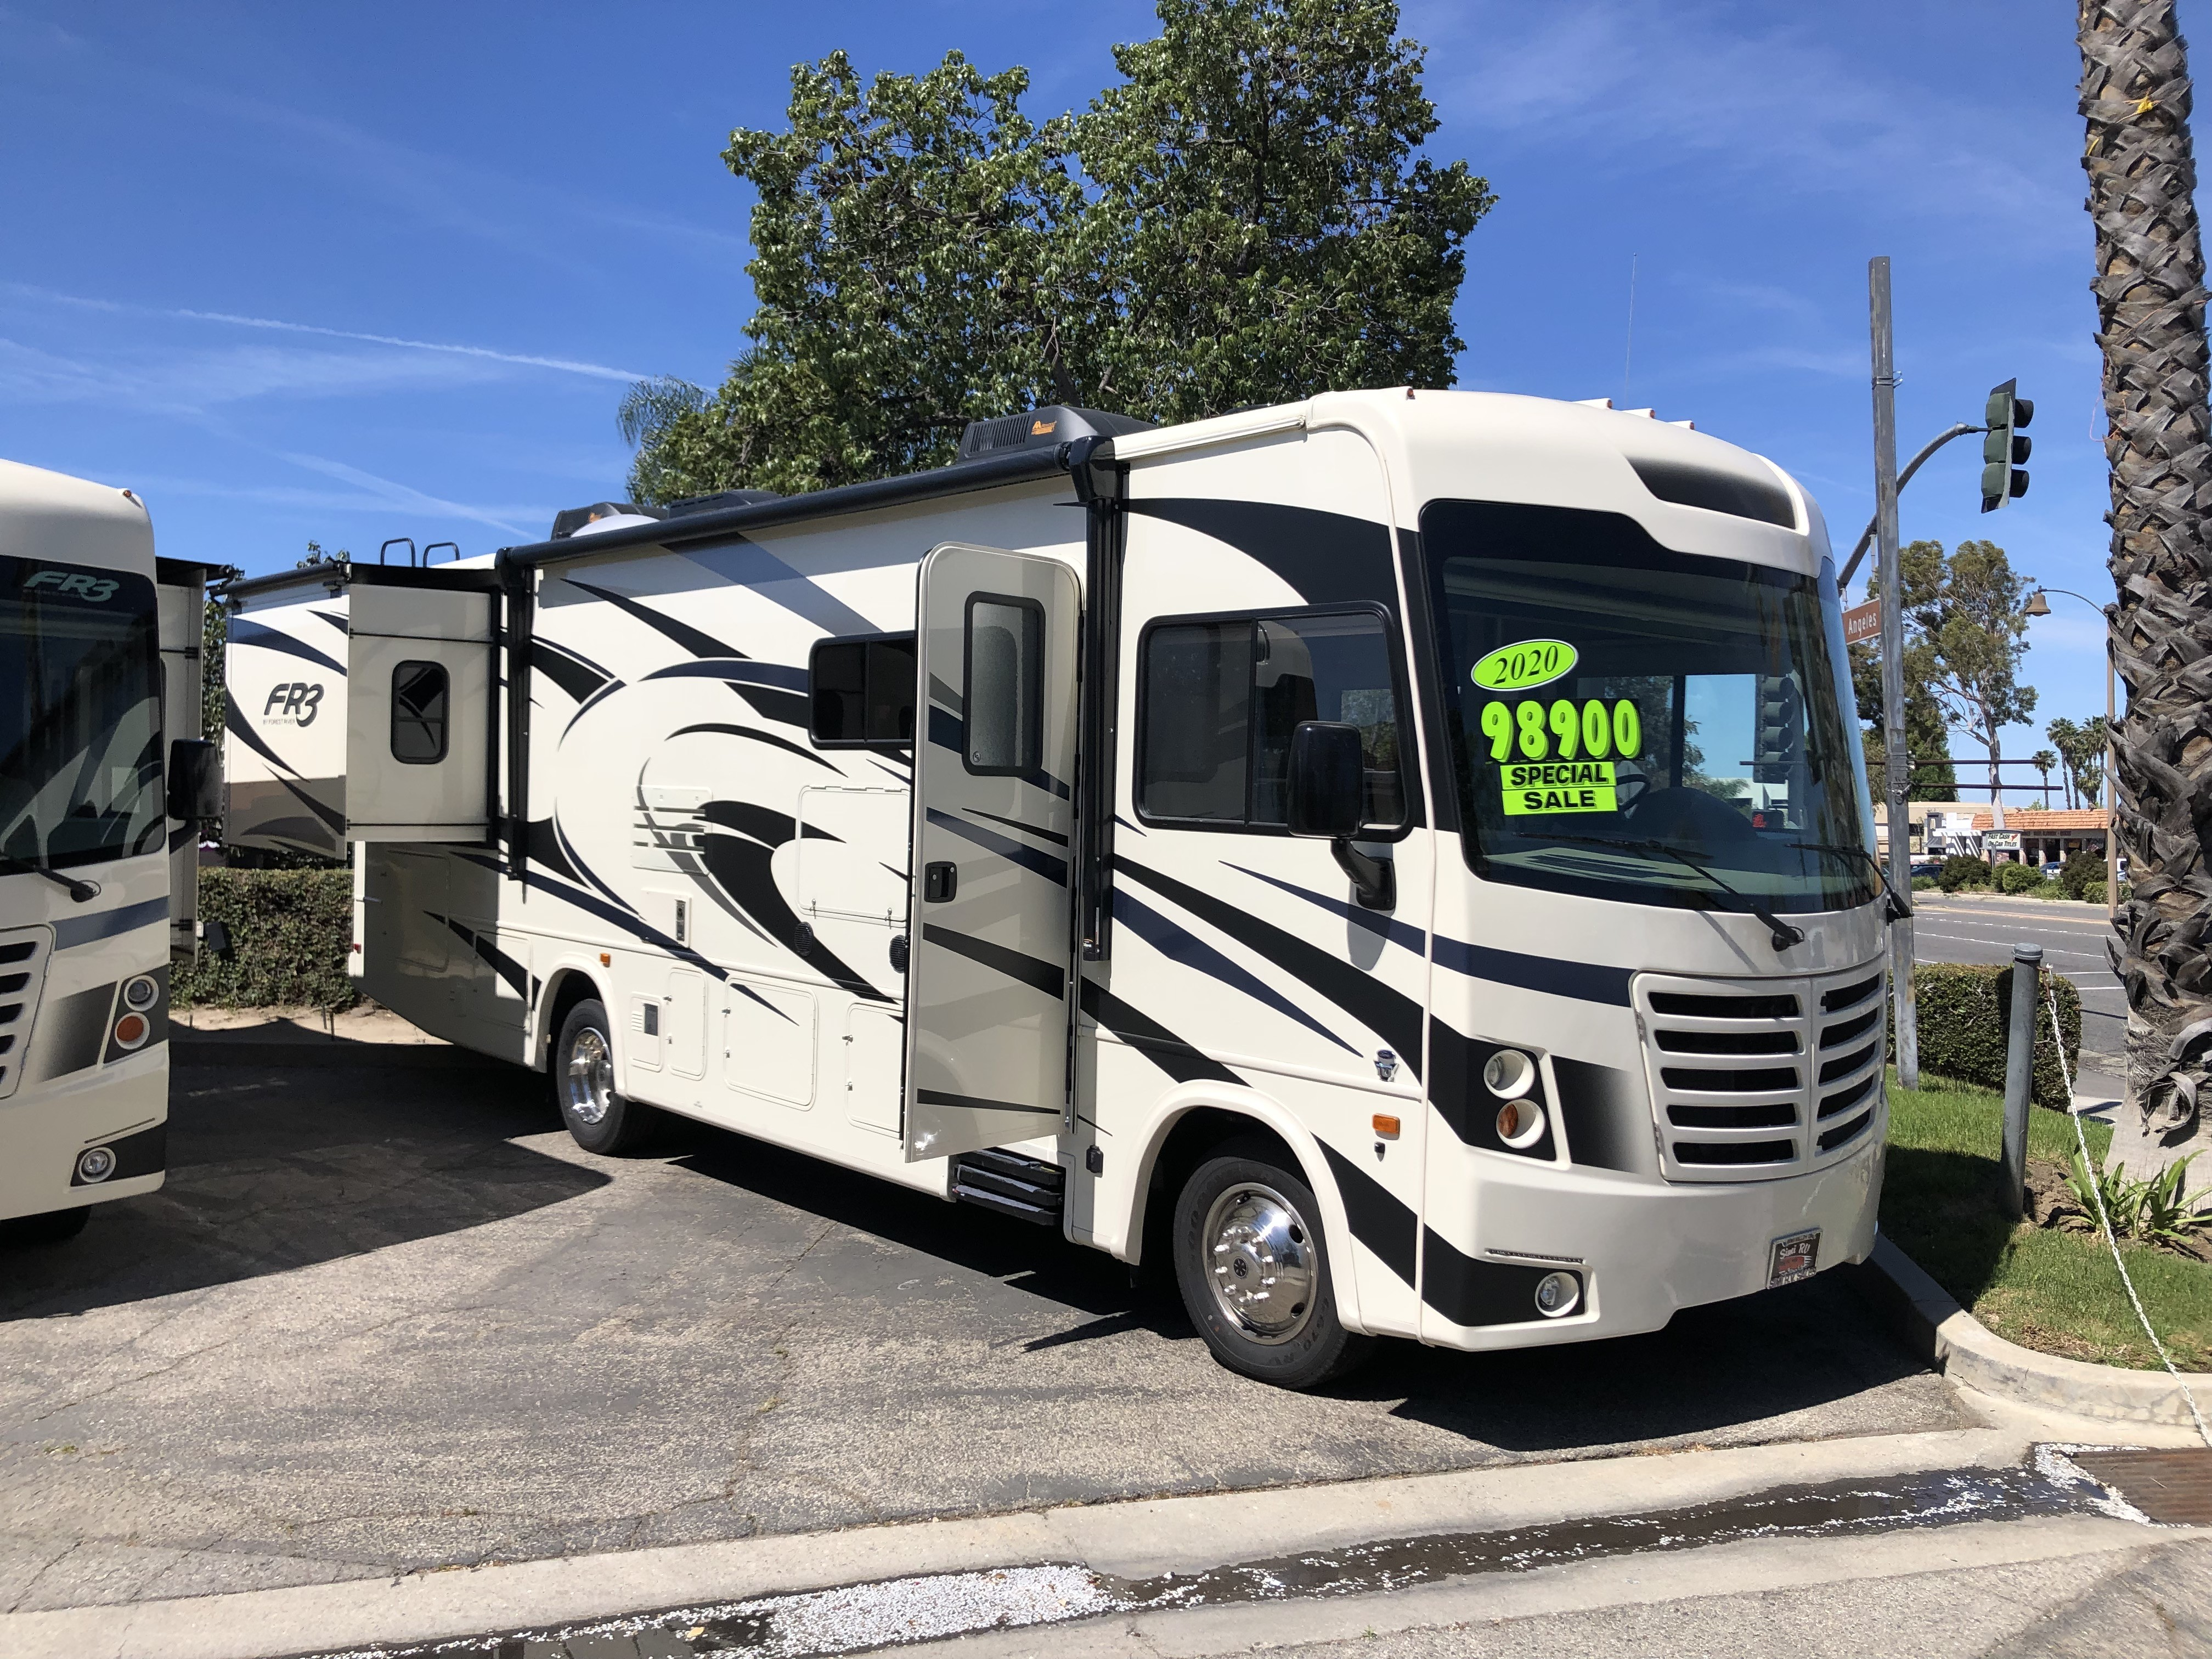 Rv For Sale >> California Rv Dealer New Used Rv Sales Parts Service